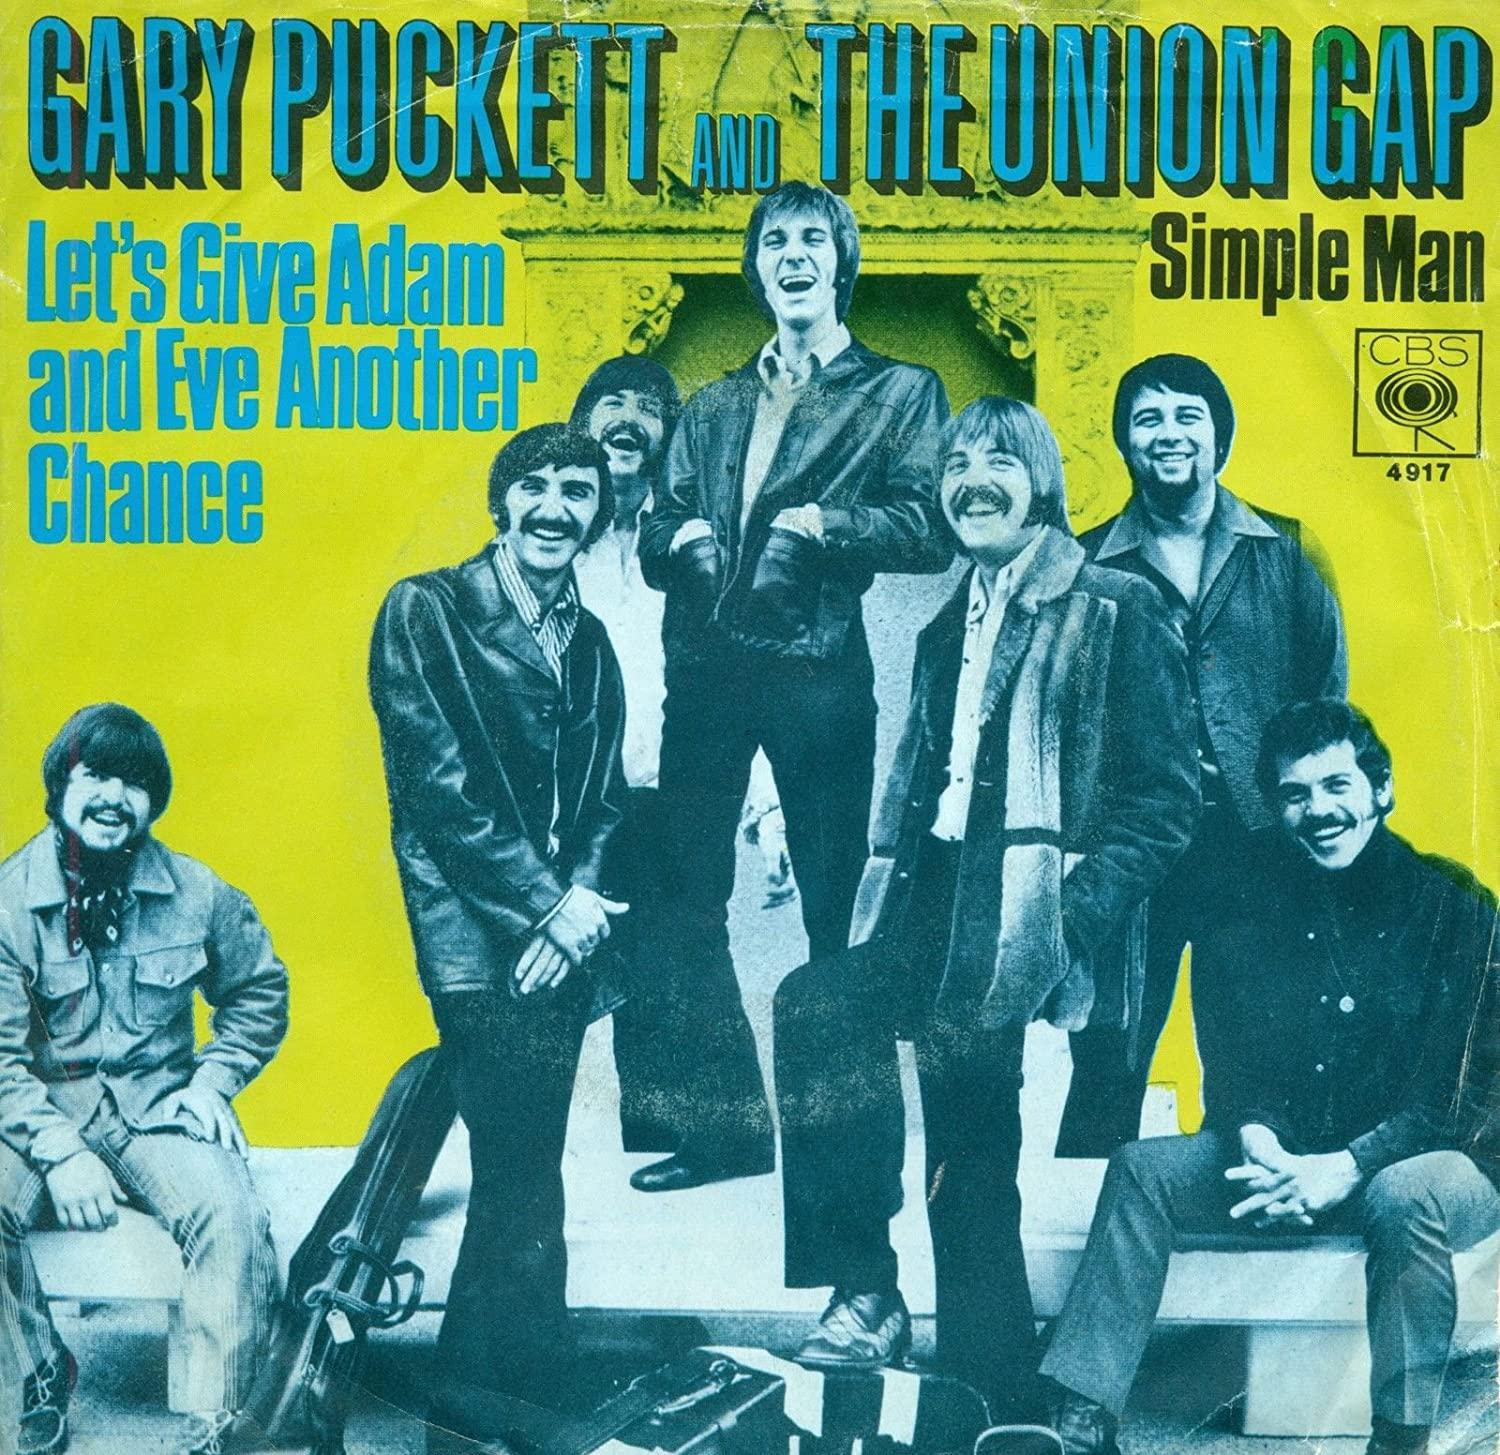 Image result for let's give adam and eve another chance gary puckett images